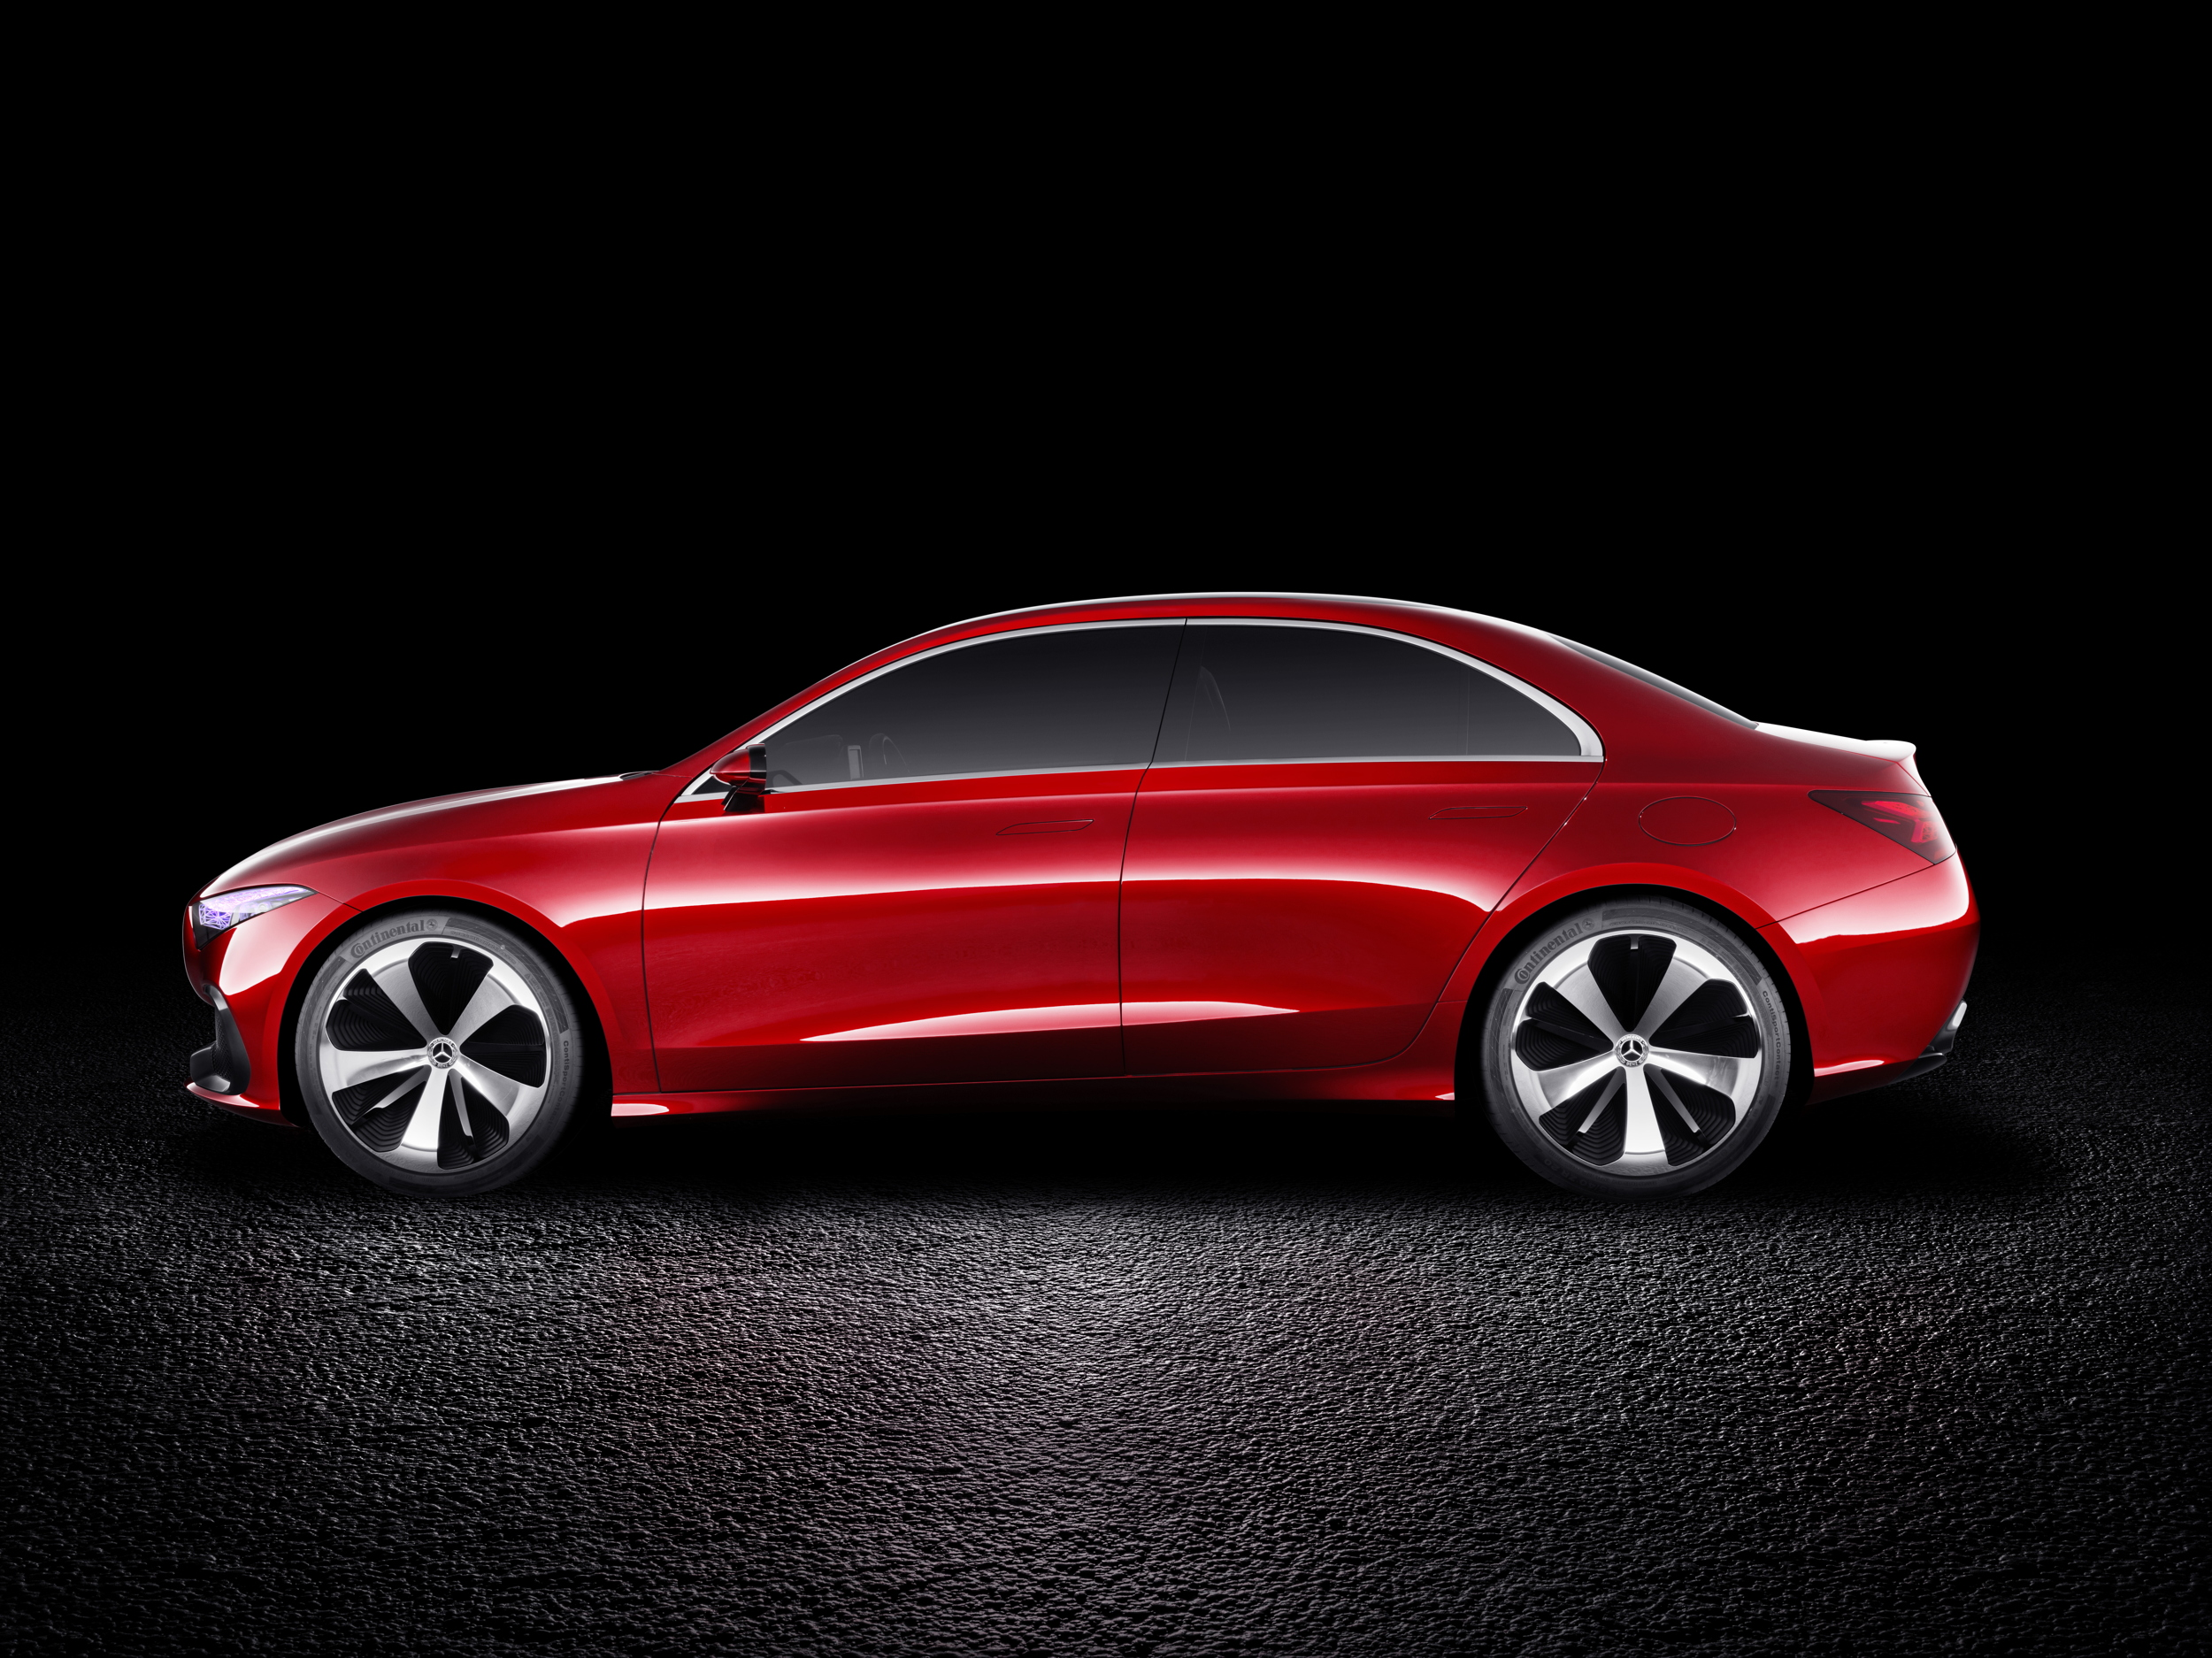 Mercedes-Benz Concept A Sedan side